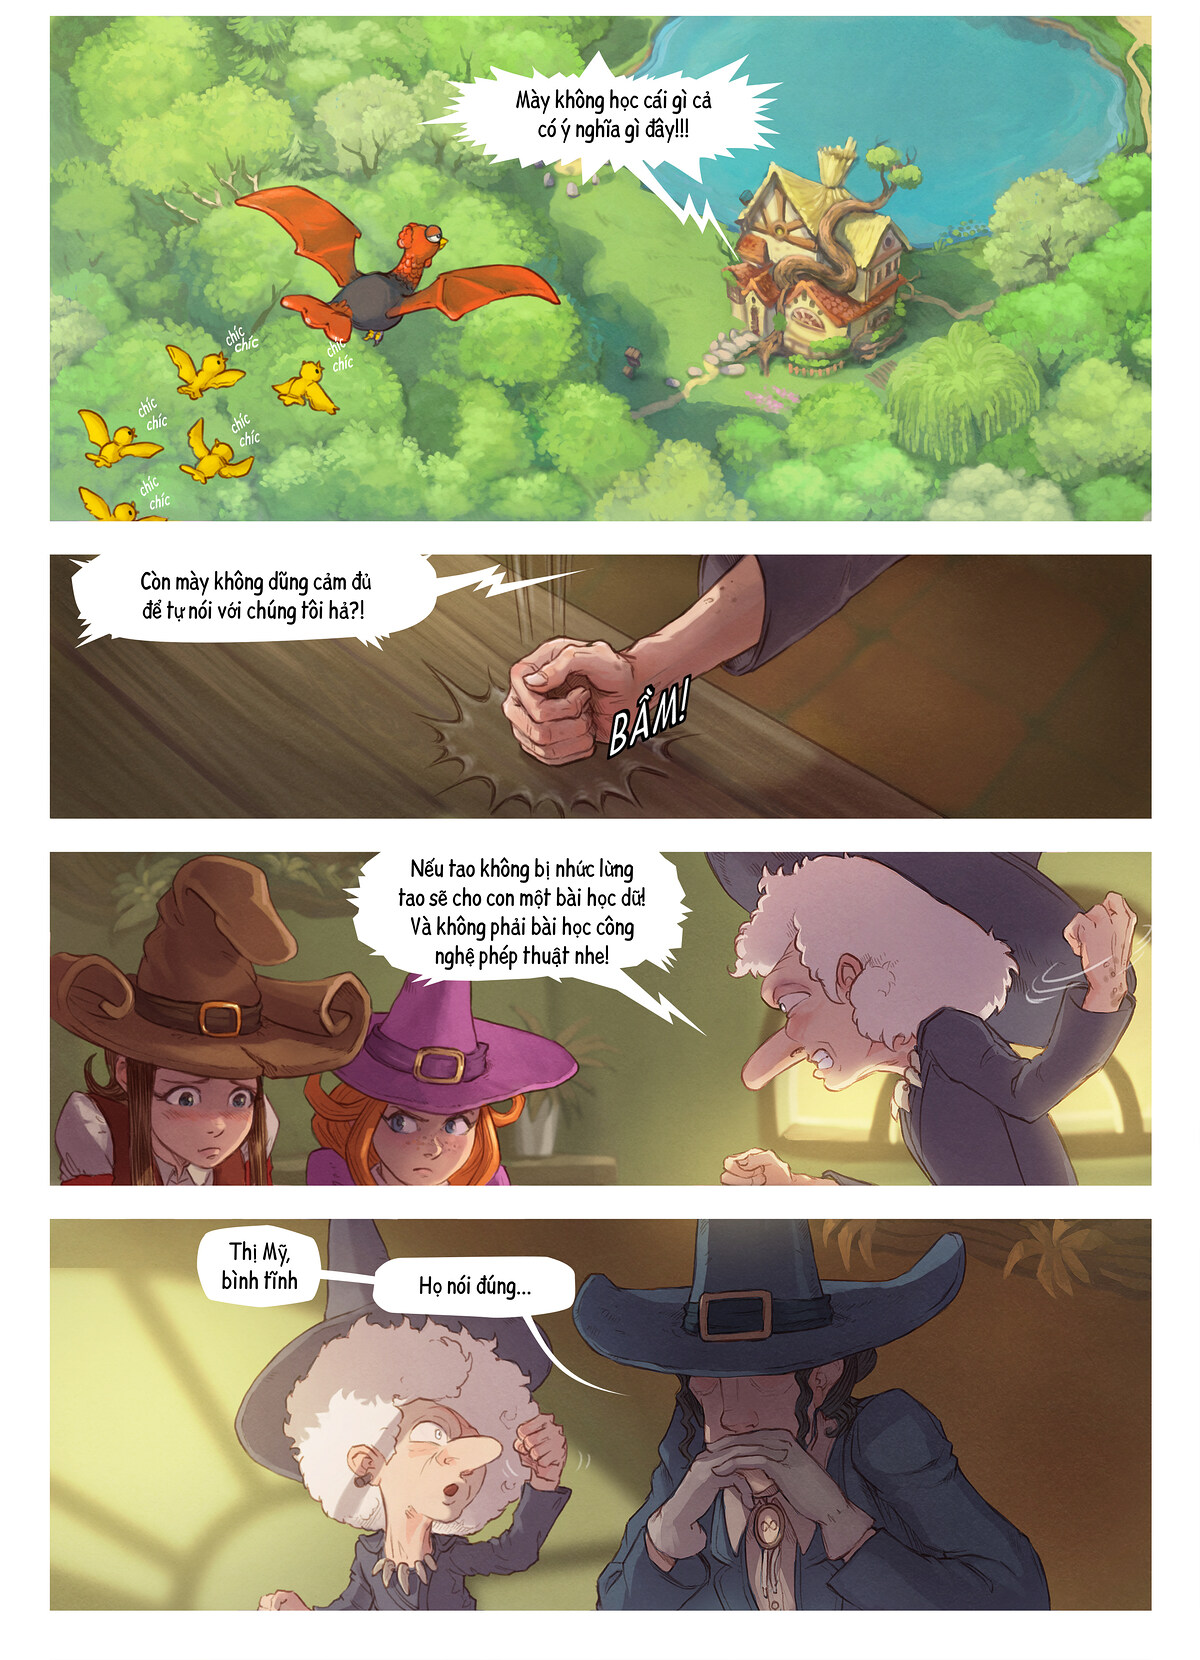 A webcomic page of Pepper&Carrot, Tập 16 [vi], trang 3